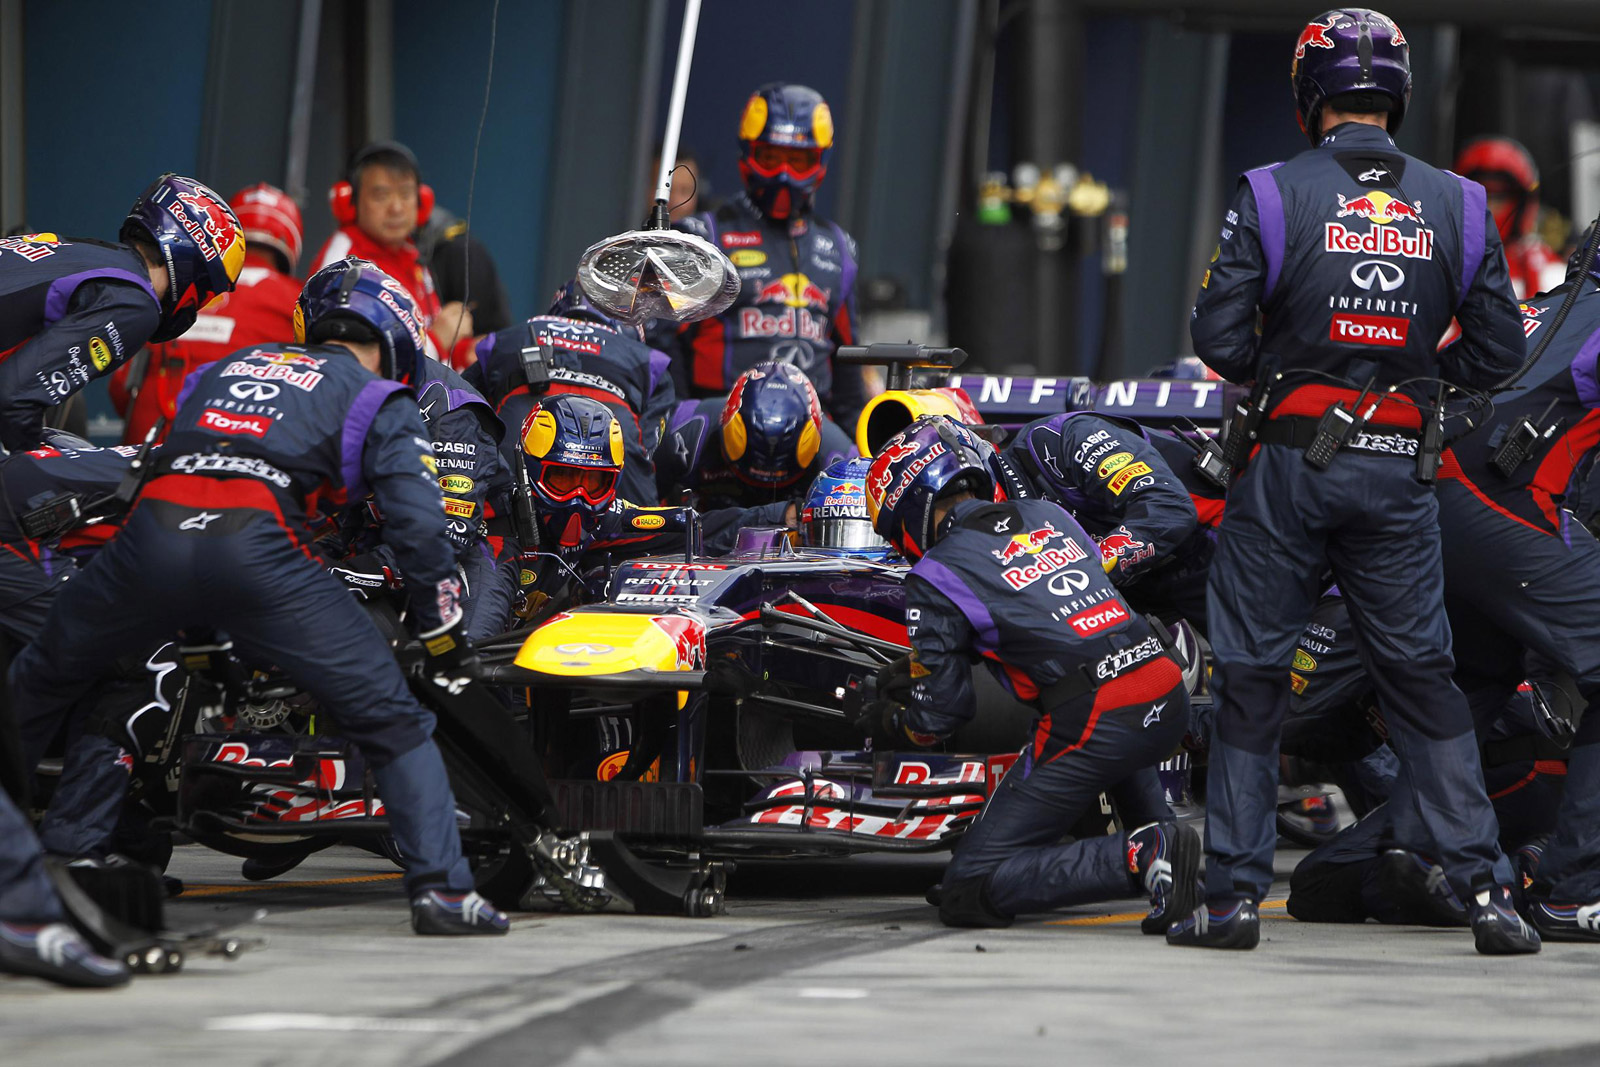 the-red-bull-racing-formula-one-team-executes-a-pit-stop_100424632_h